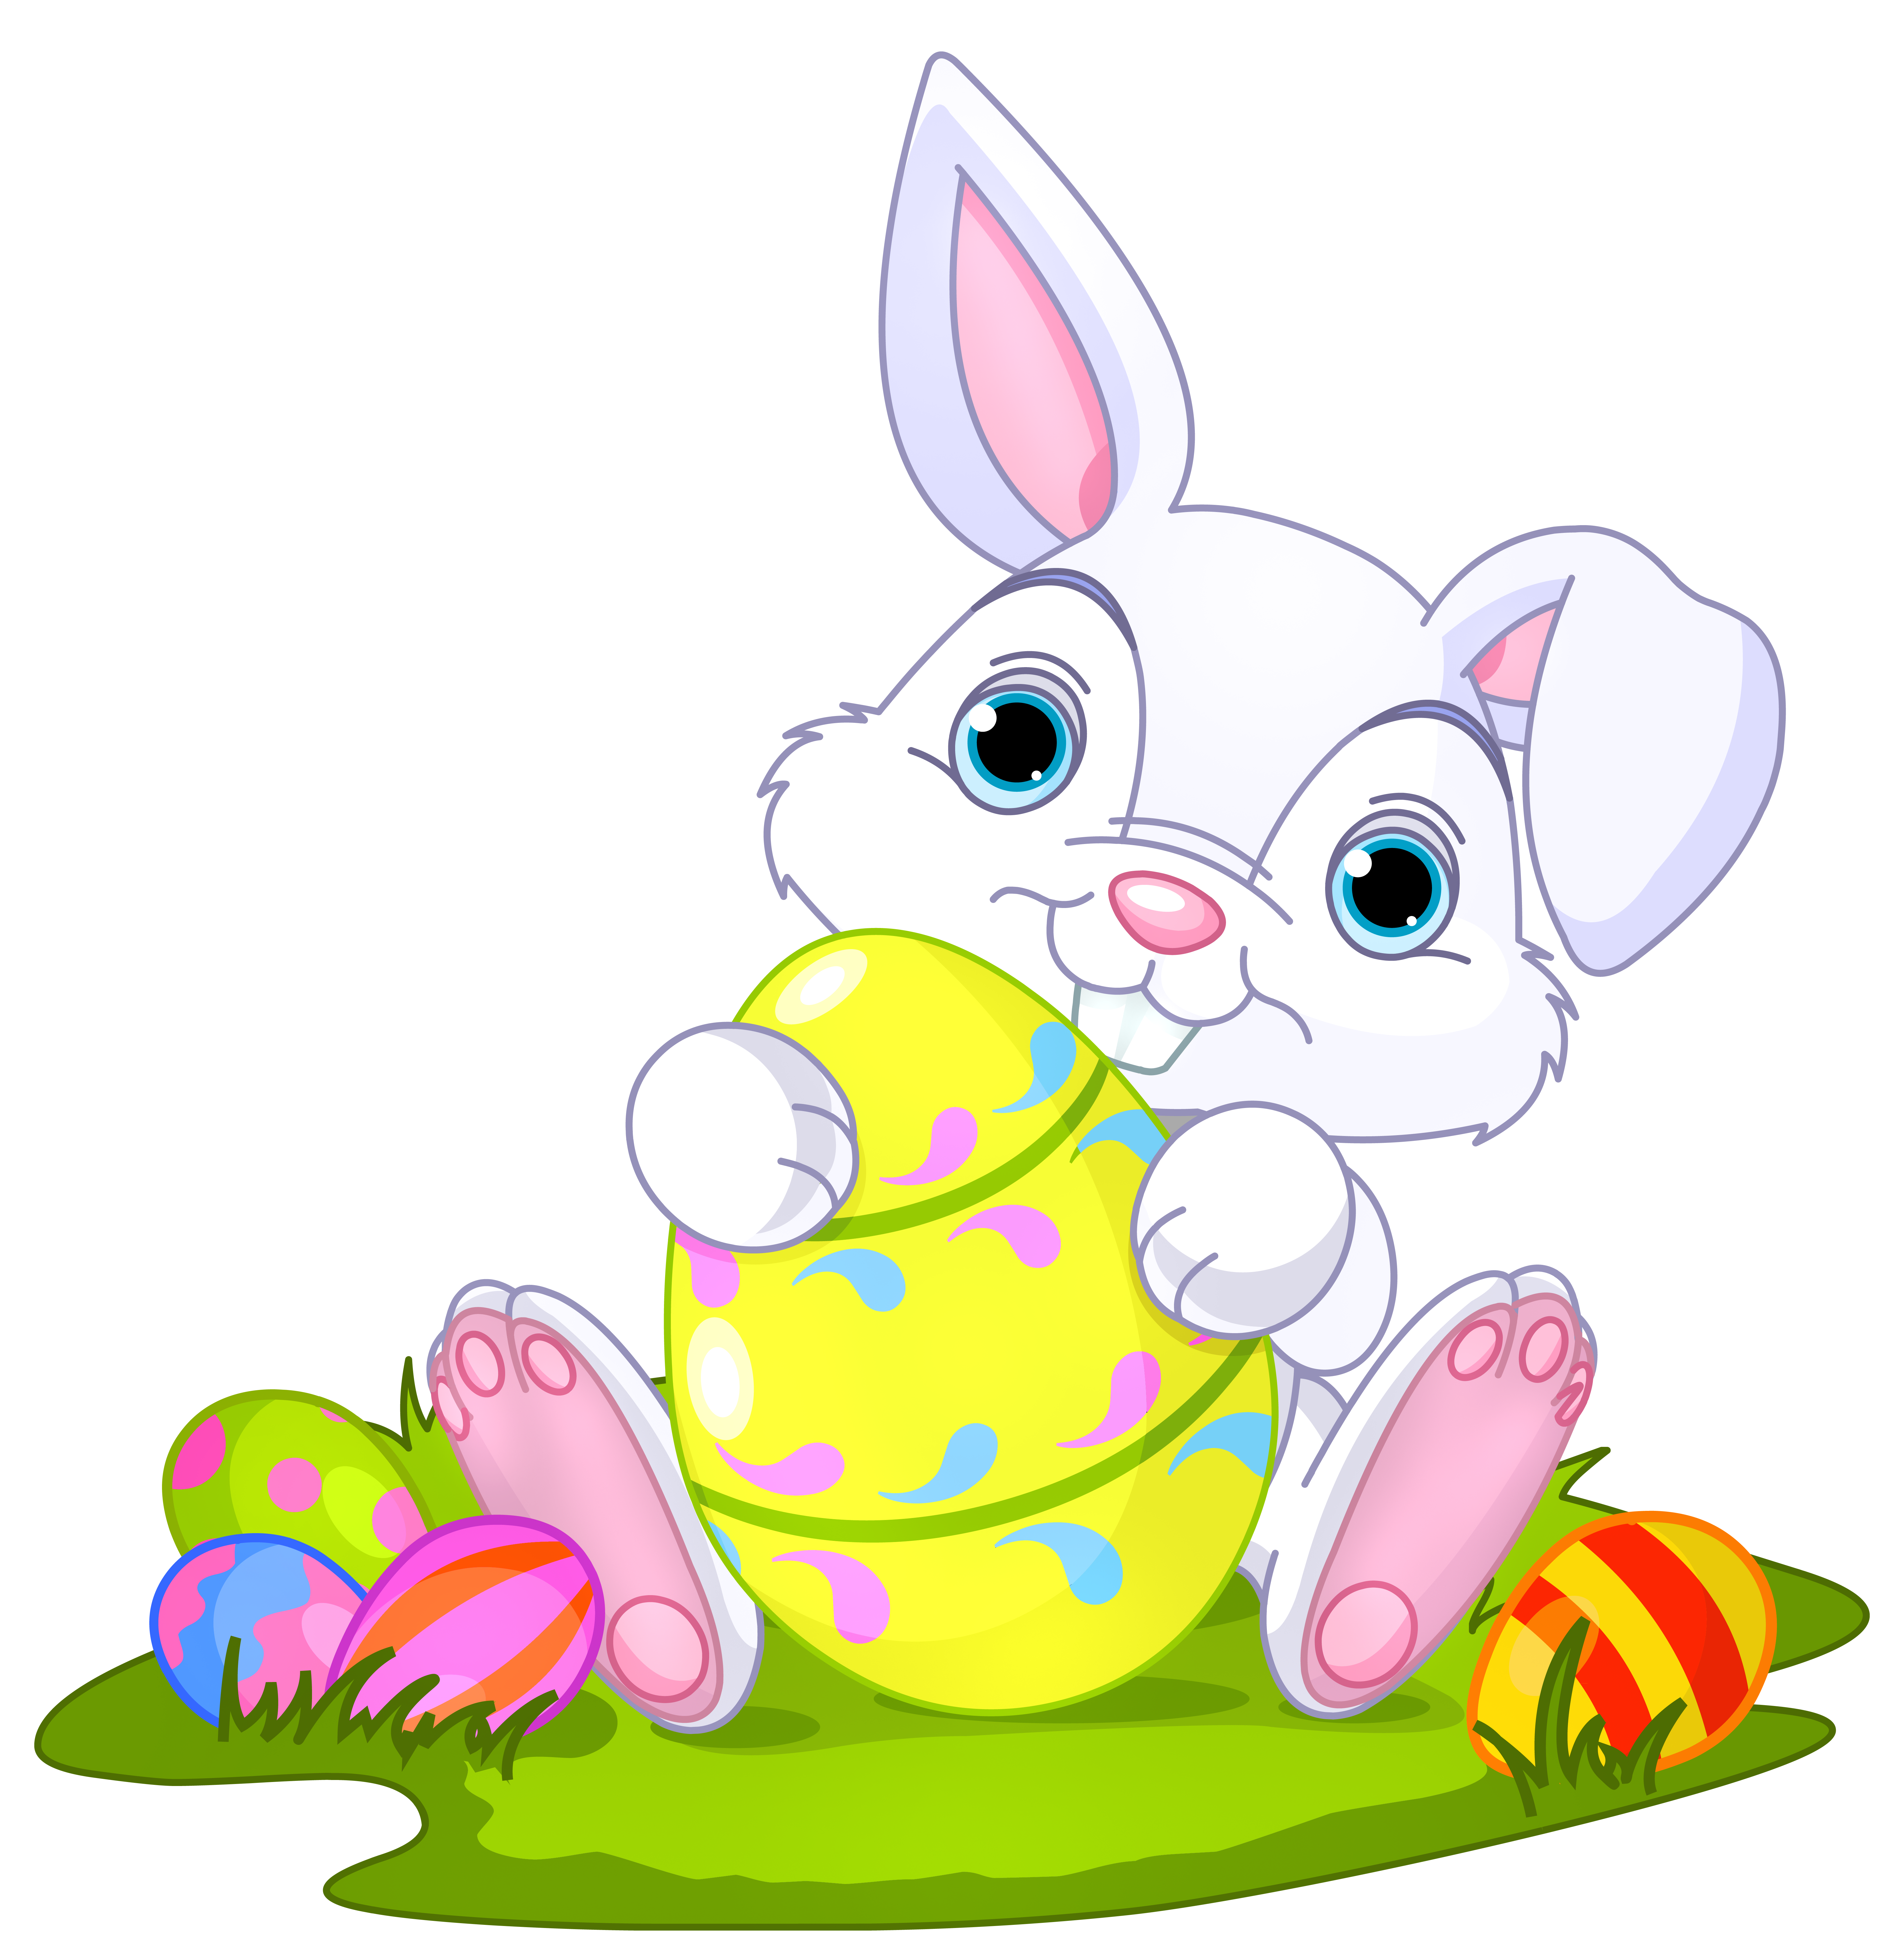 Bunny flower clipart picture black and white Easter Bunny with Eggs Decor PNG Clipart Picture | Gallery ... picture black and white